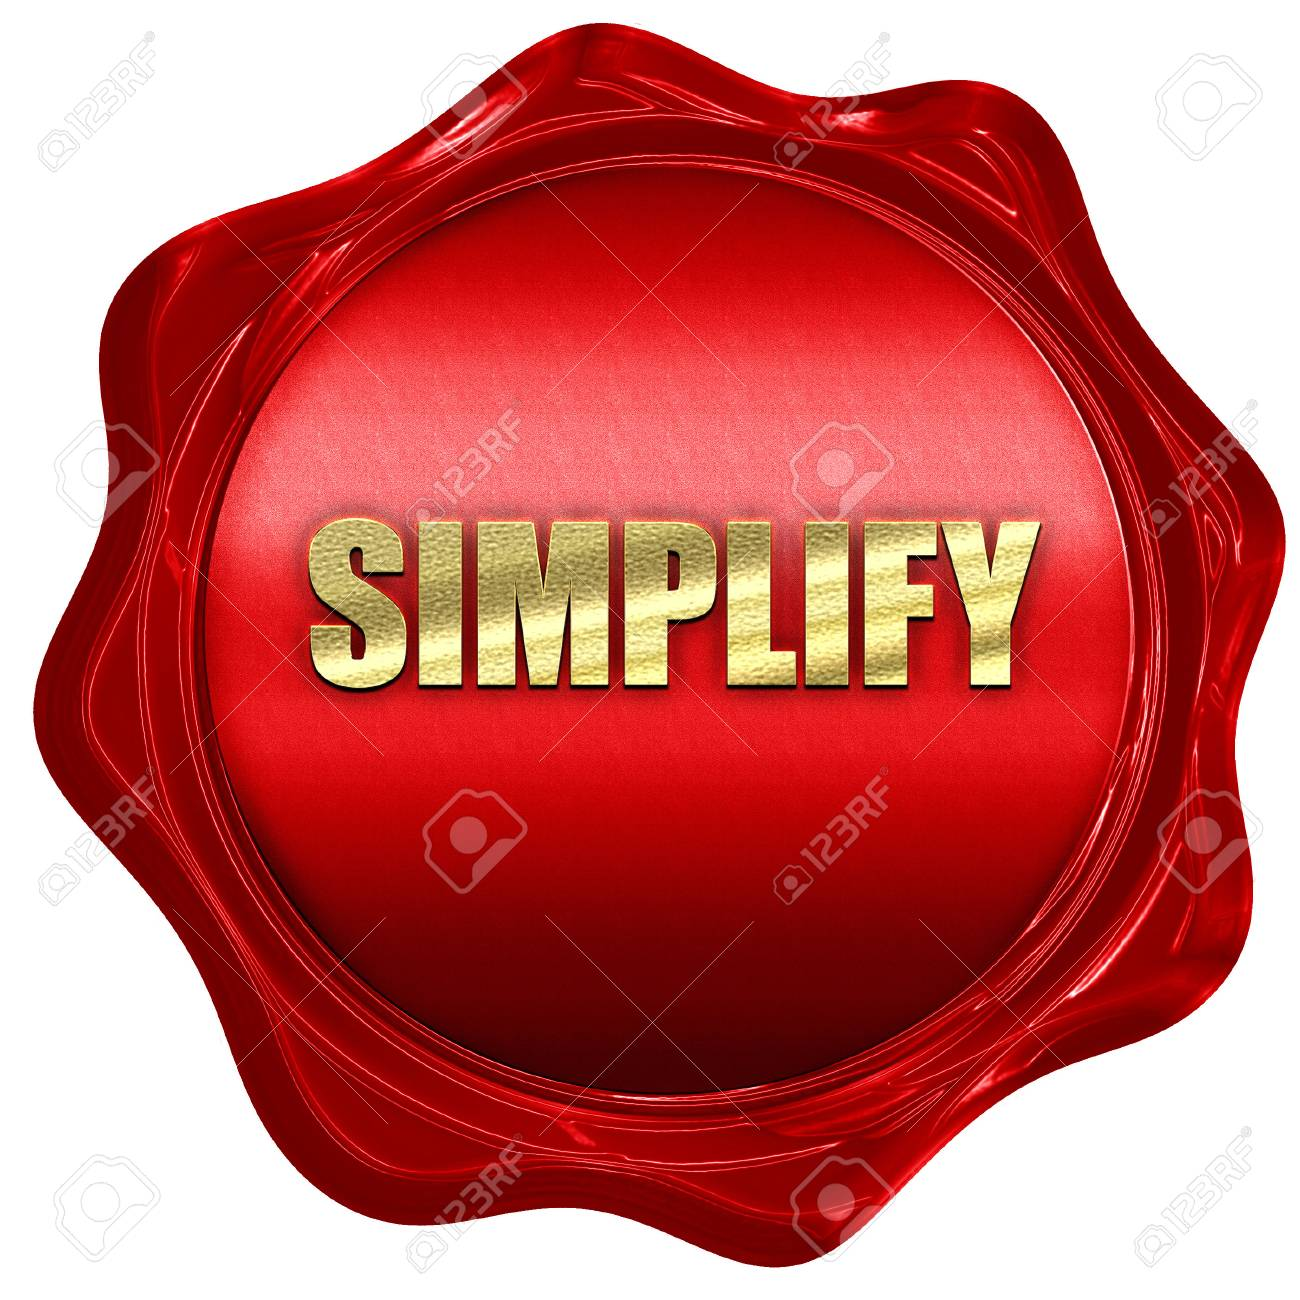 simplify, 3D rendering, red wax stamp with text